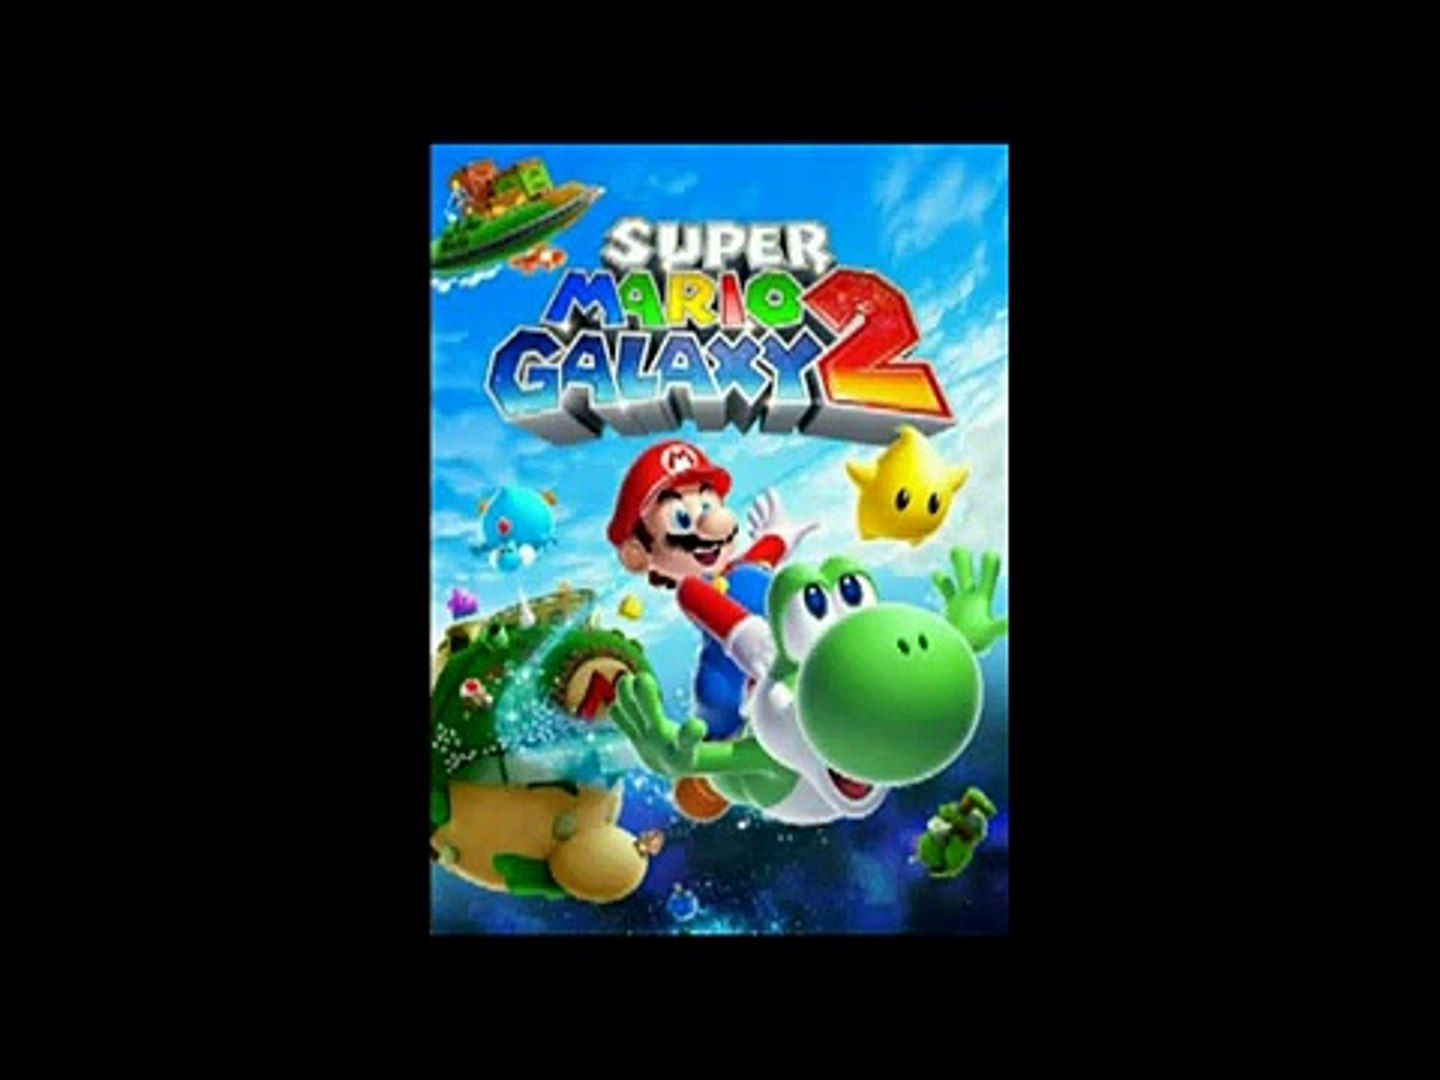 Super Mario Galaxy 2 Music - Puzzle Plank